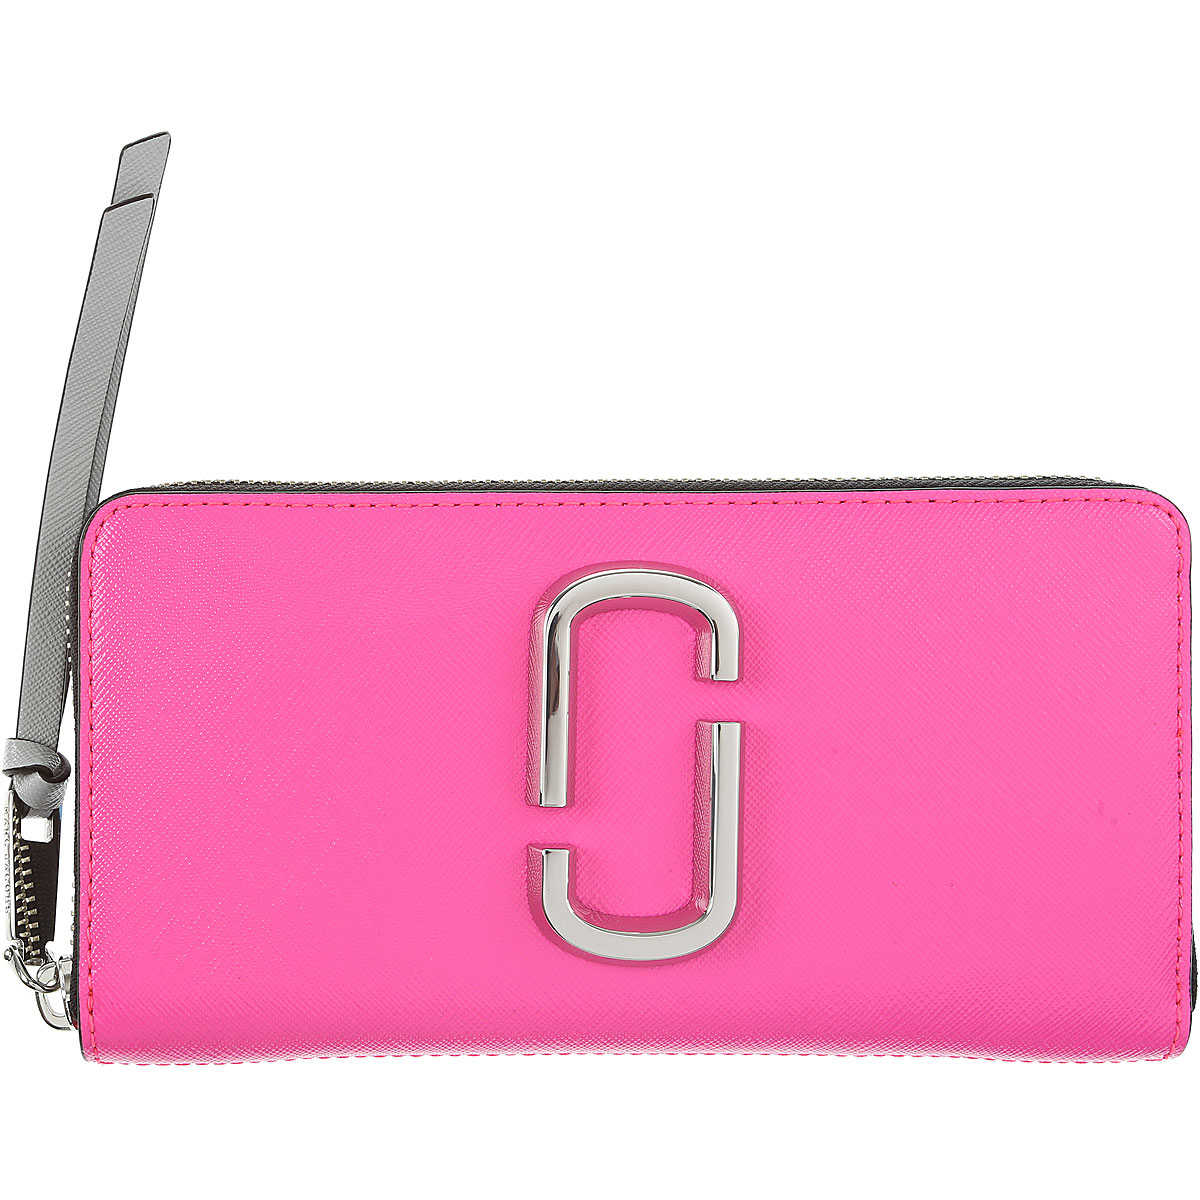 Marc Jacobs Wallet for Women